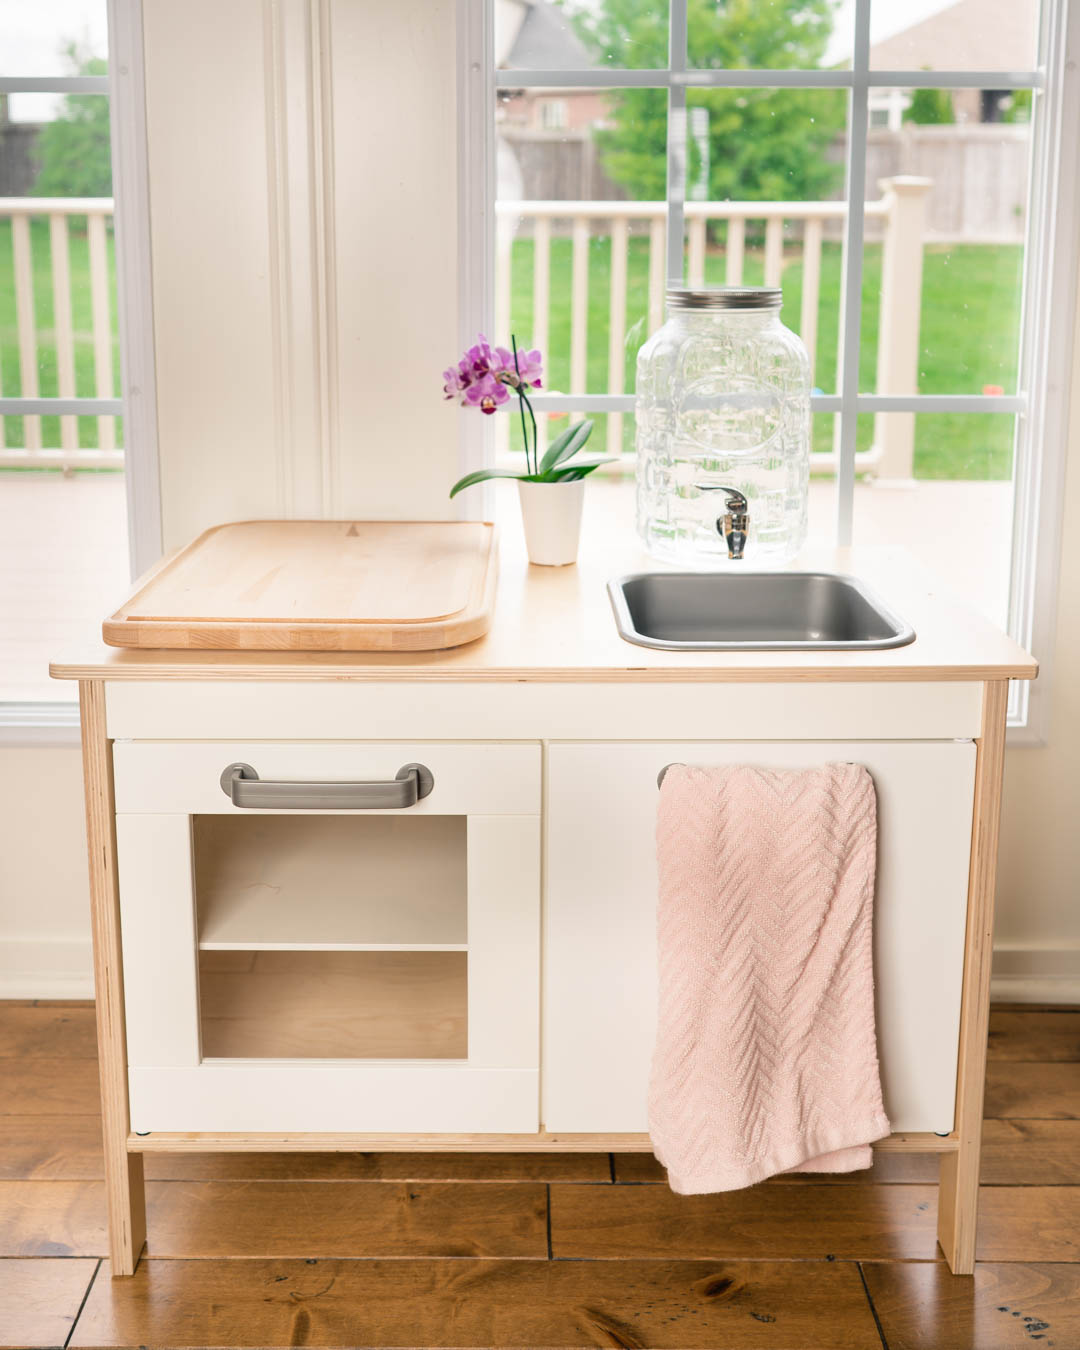 Montessori Functional Kitchen For Kids How To Build A Toddler Kitchen